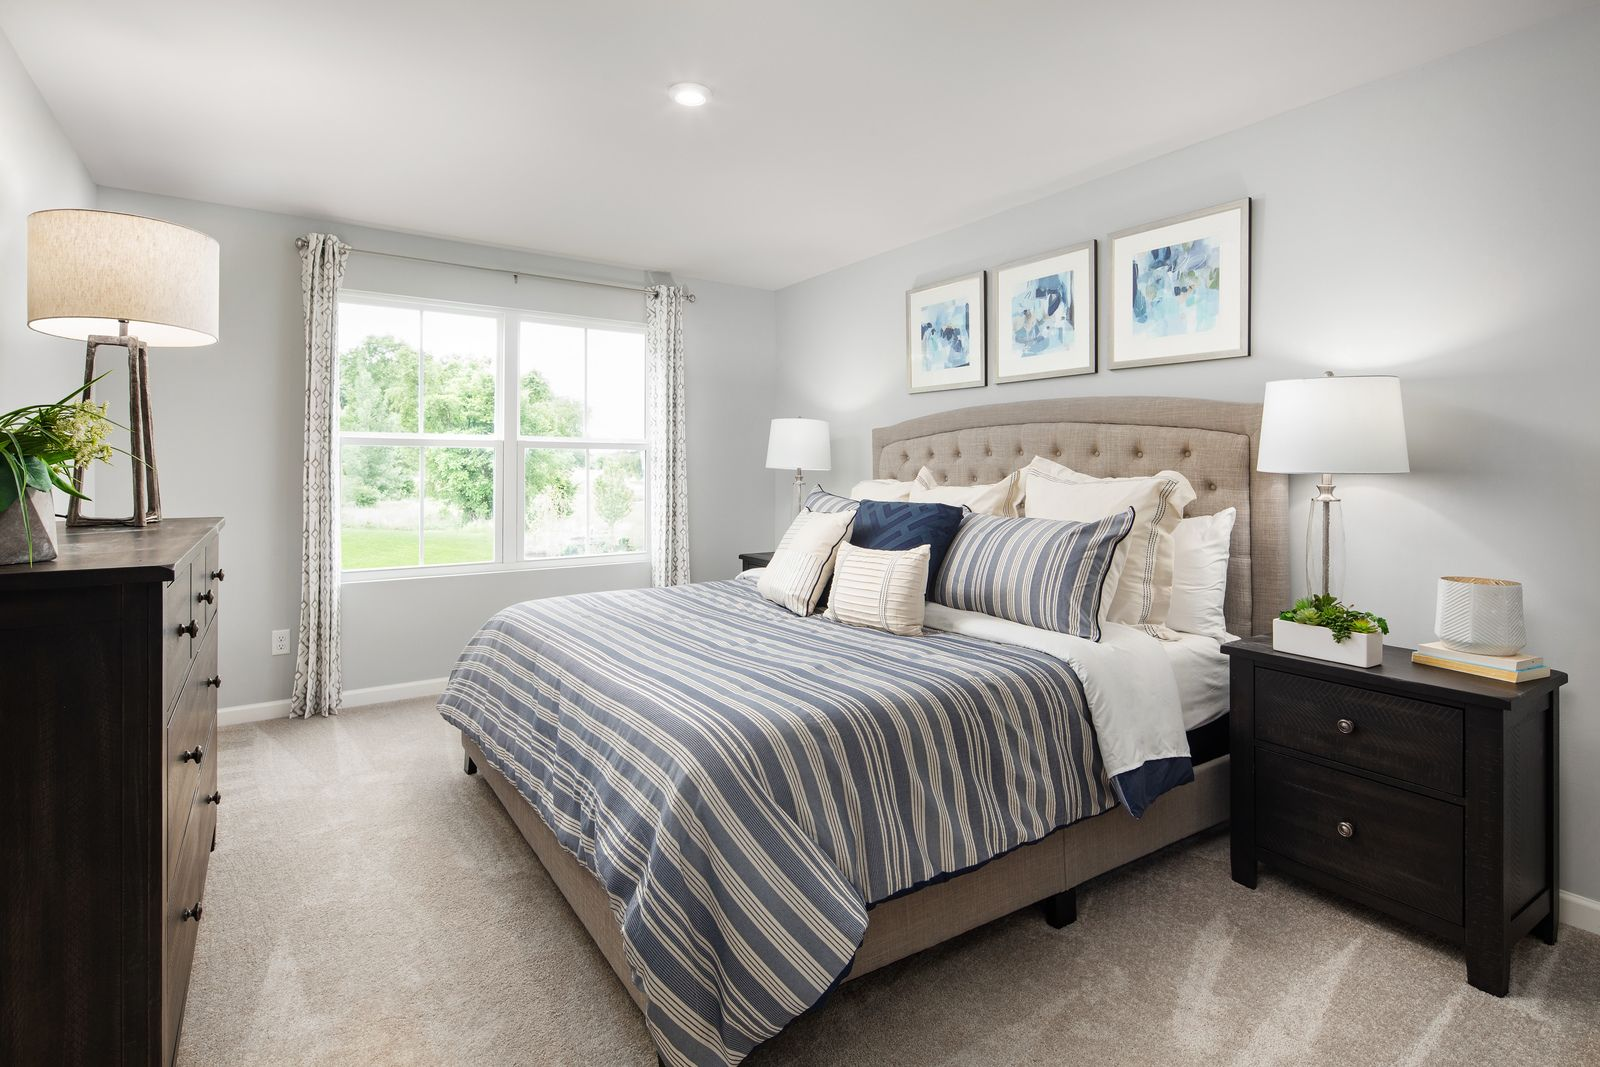 Bedroom featured in the Poplar By Ryan Homes in Nashville, TN